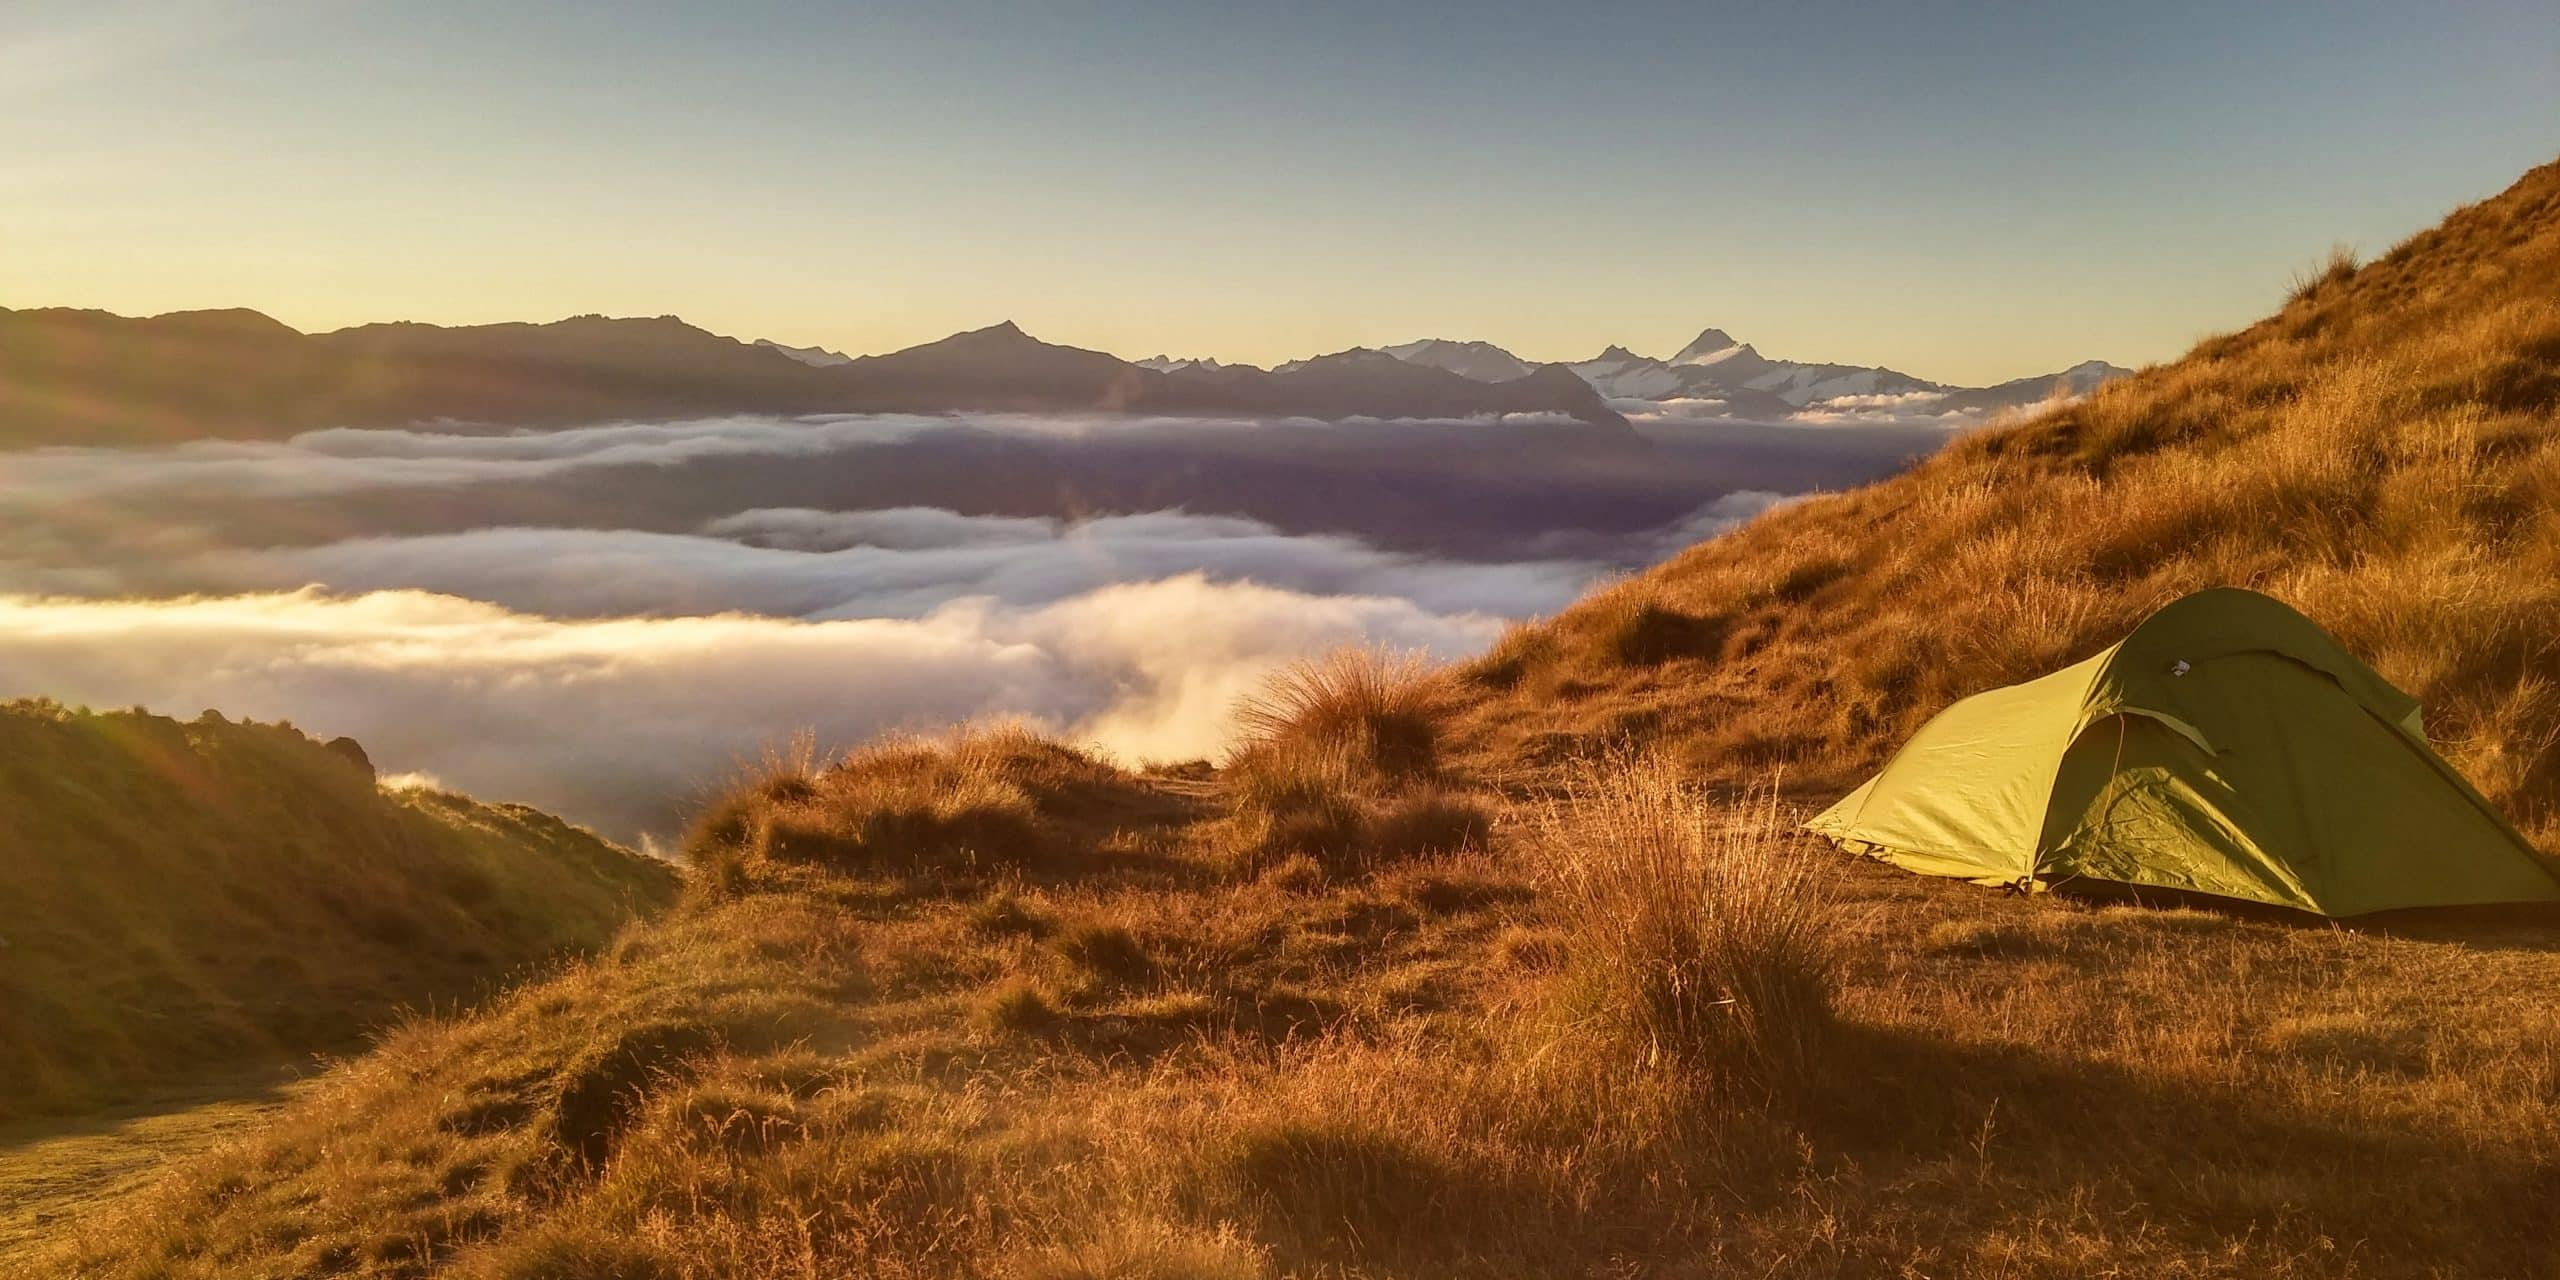 A Beginner's Guide To Essential Camping Gear 2020